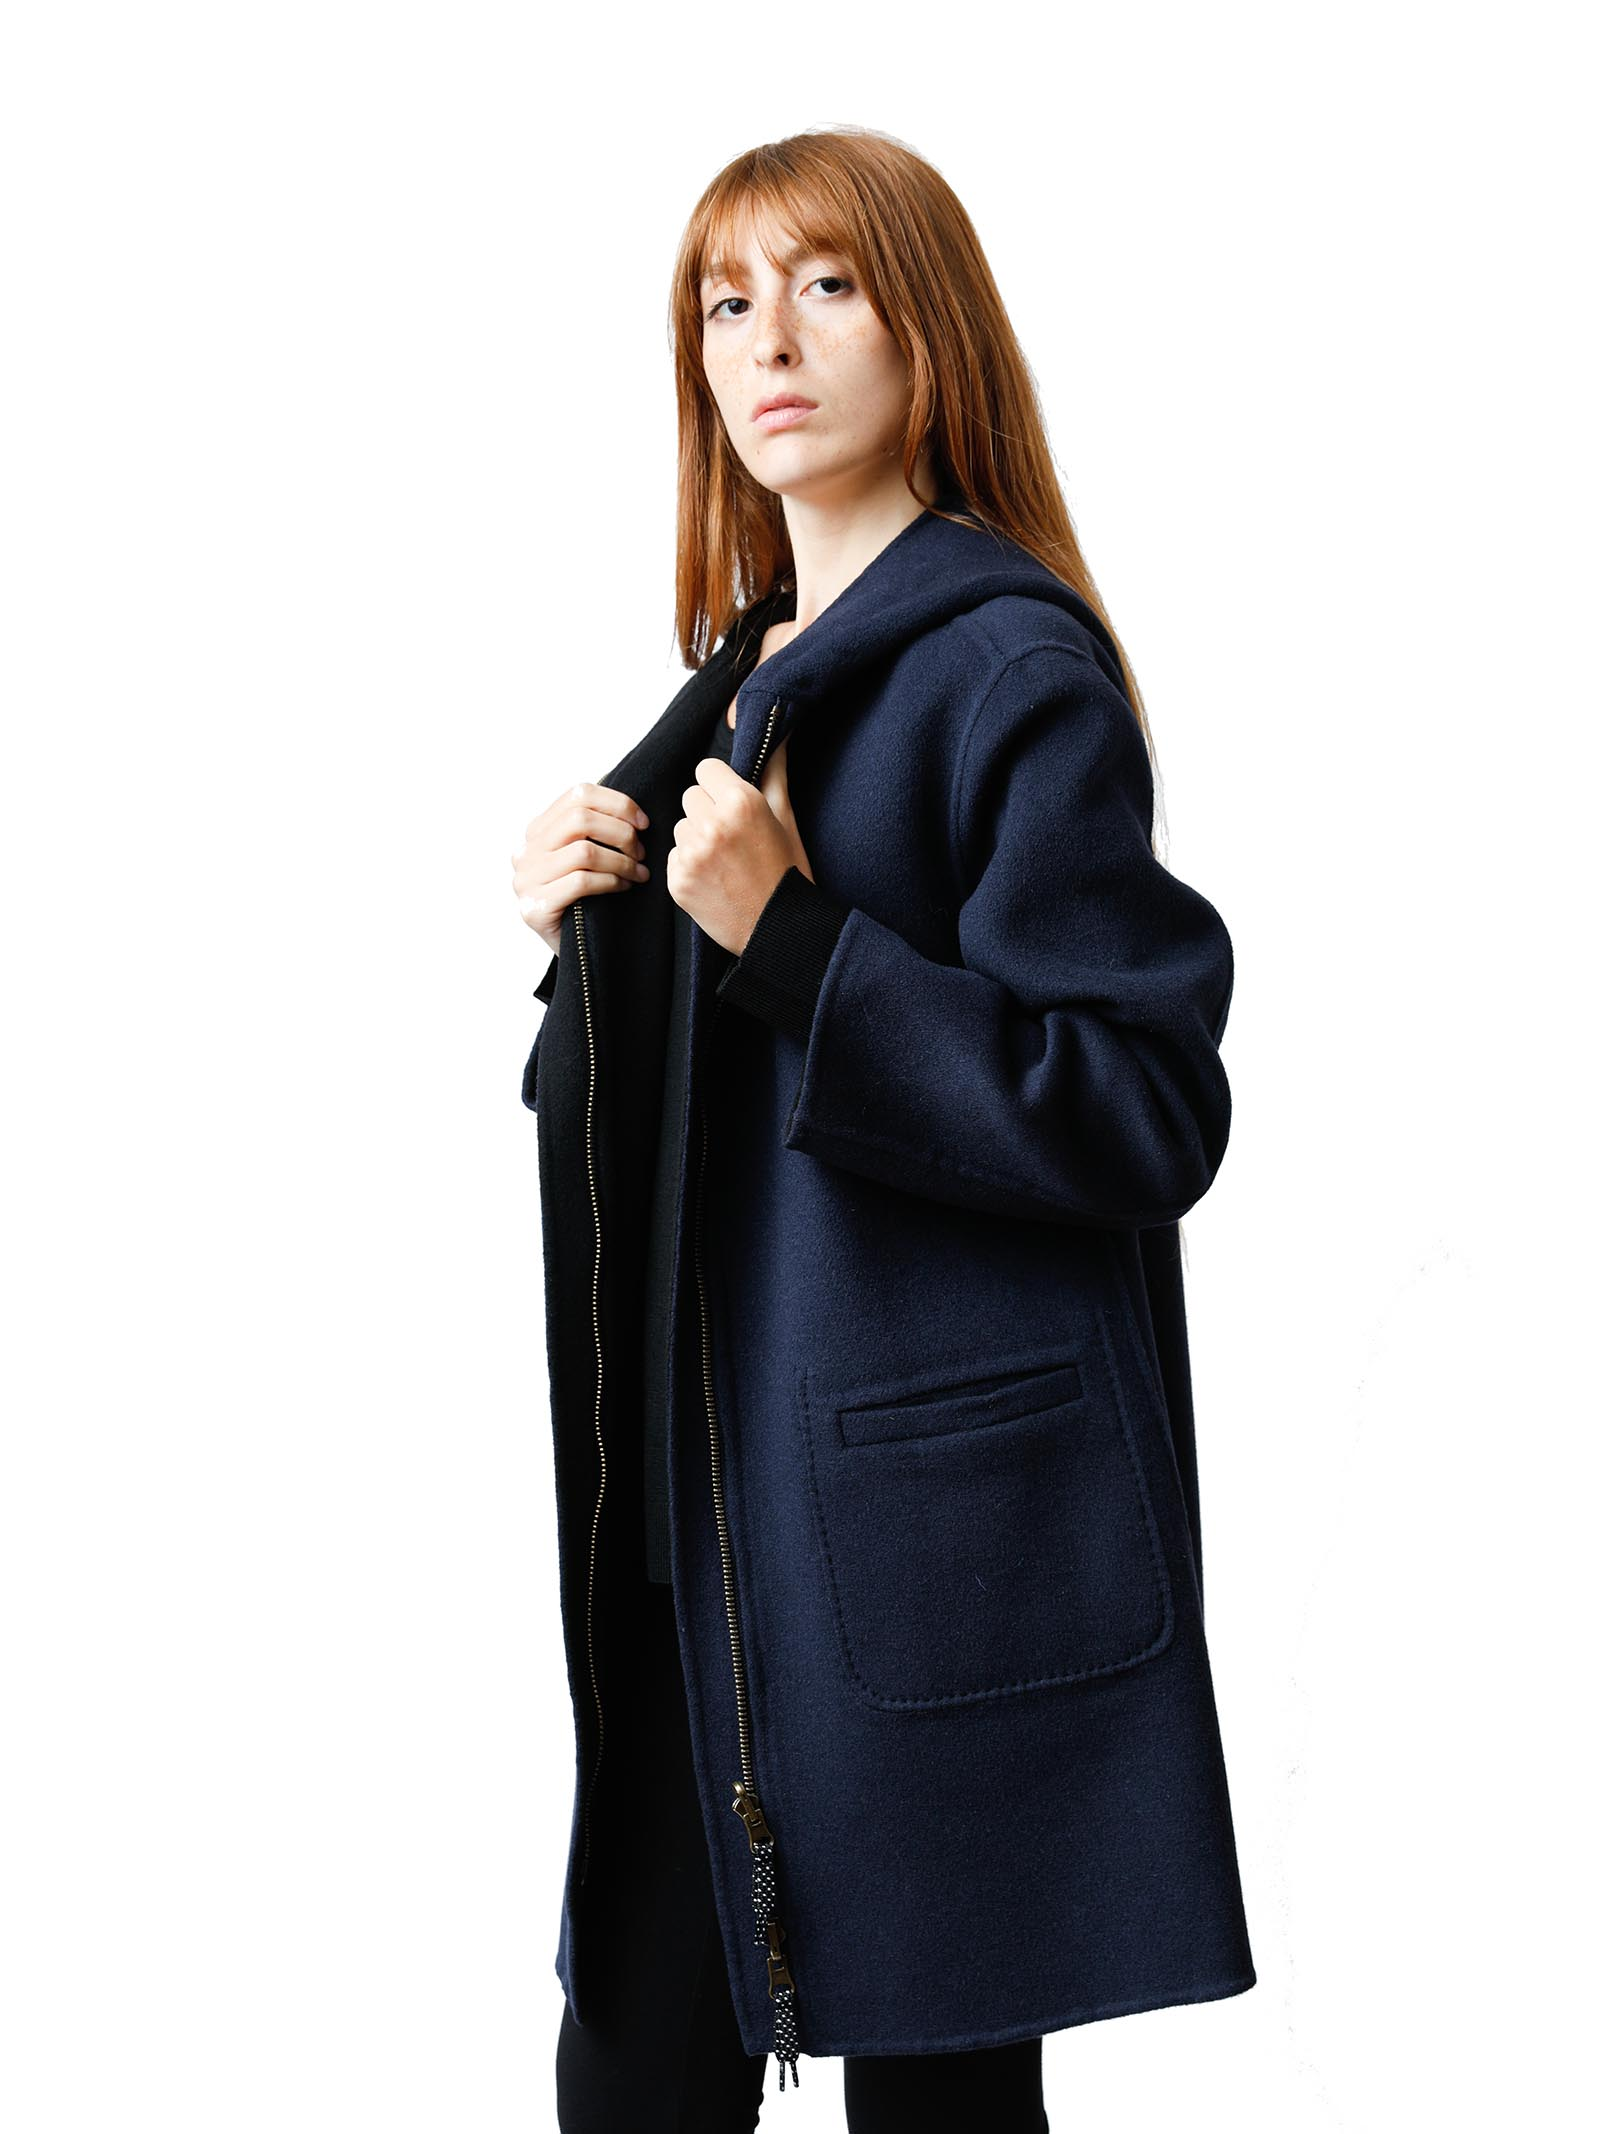 Women's Clothing Long Double Face Coat in Black and Blue with Hood Maliparmi   Coats and jackets   JA52572027680B20